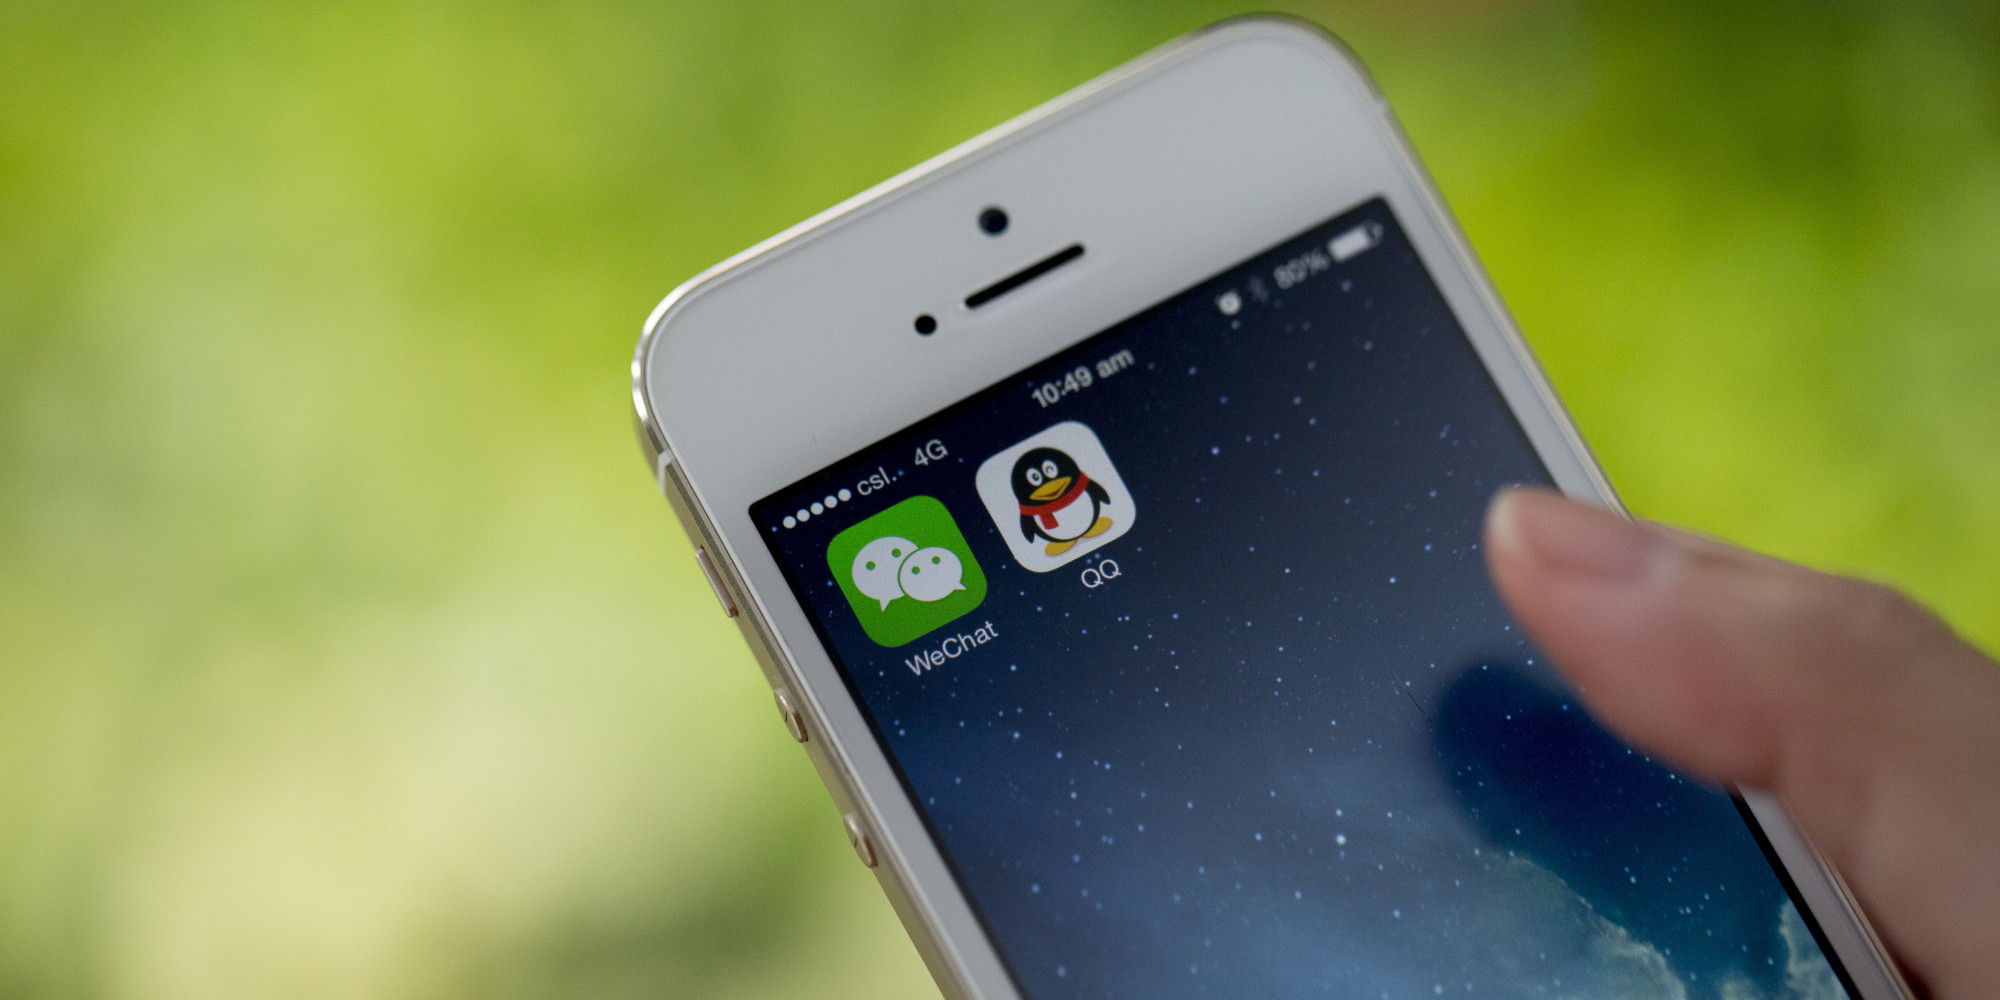 Images Of Tencent Applications As Second Quarter Earnings Are Released